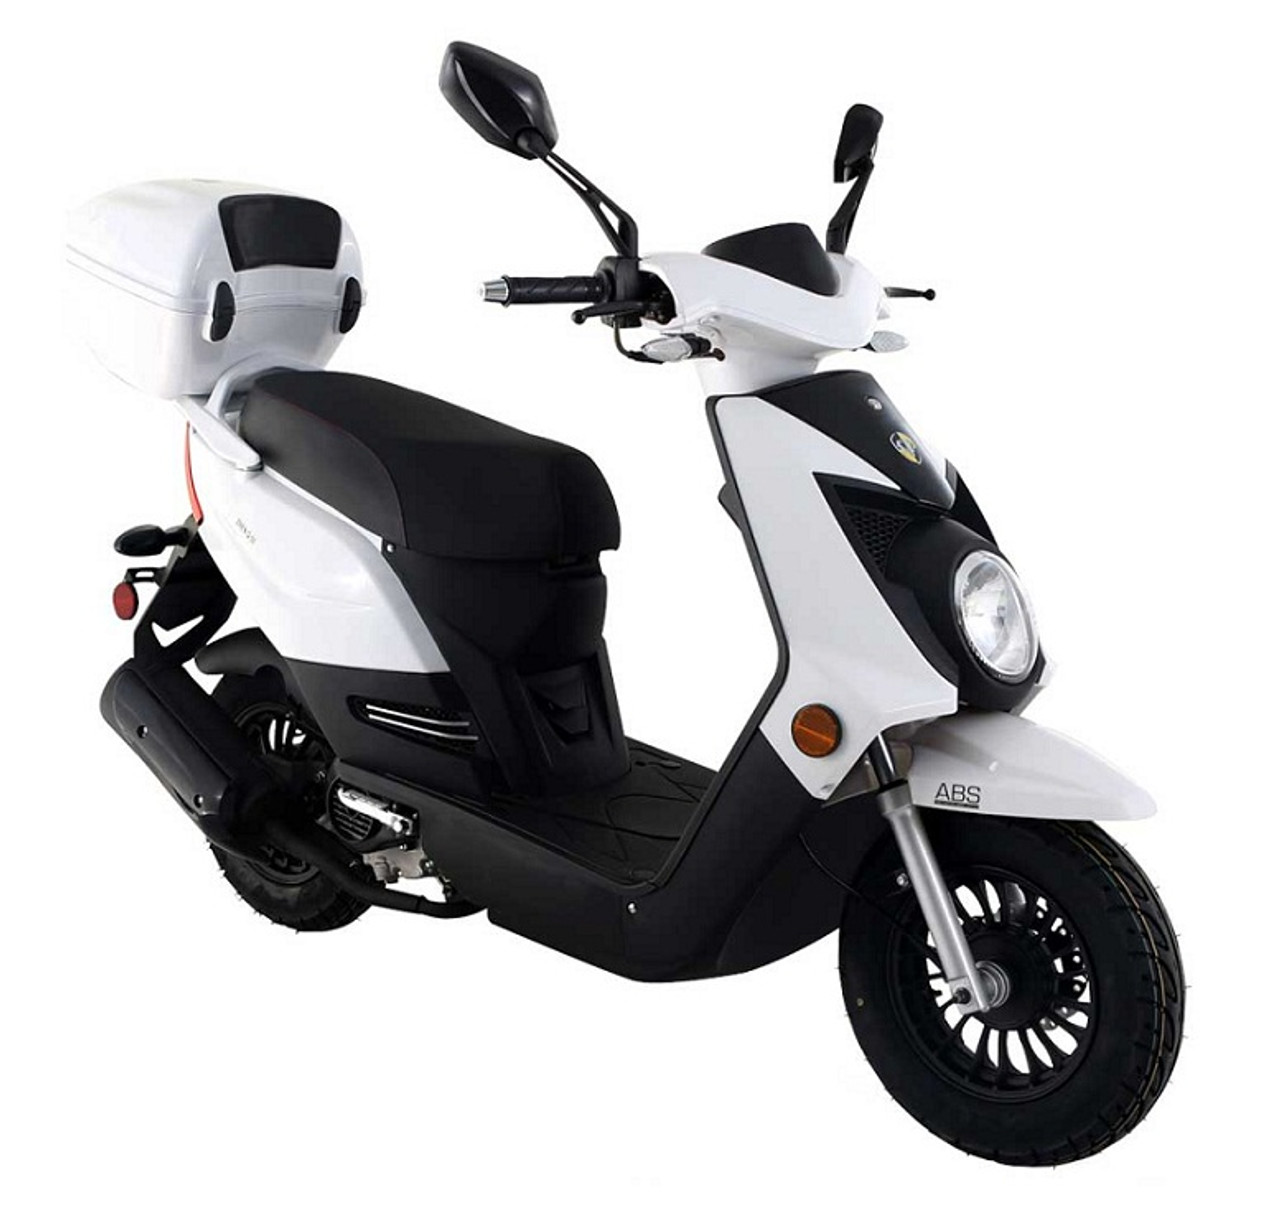 Amigo Q-50-SA 4 Stroke Gas Moped Scooter, Remote Start, USB Port, Alarm, Front ABS